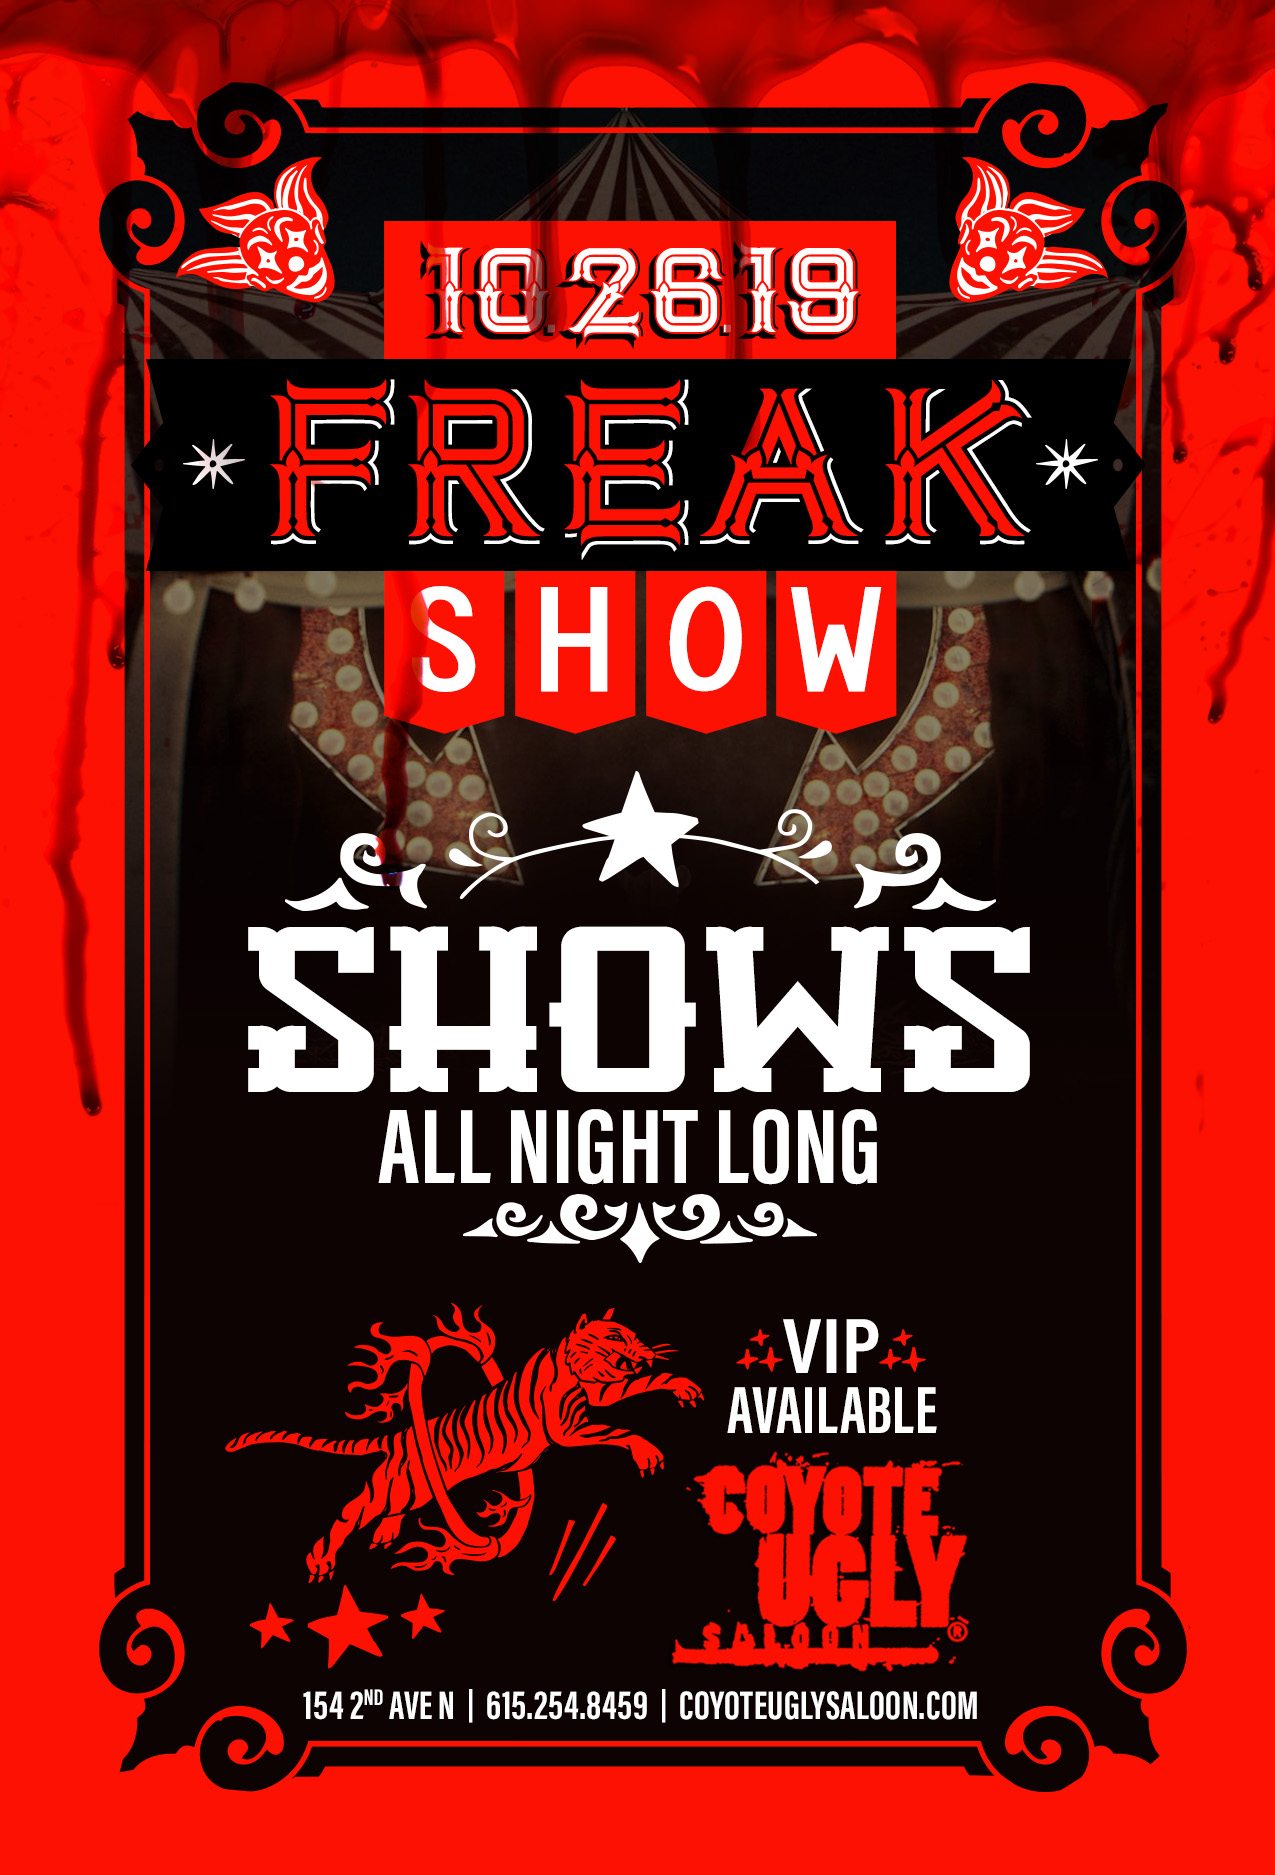 Freak Show in Nashville on October 26, 2019